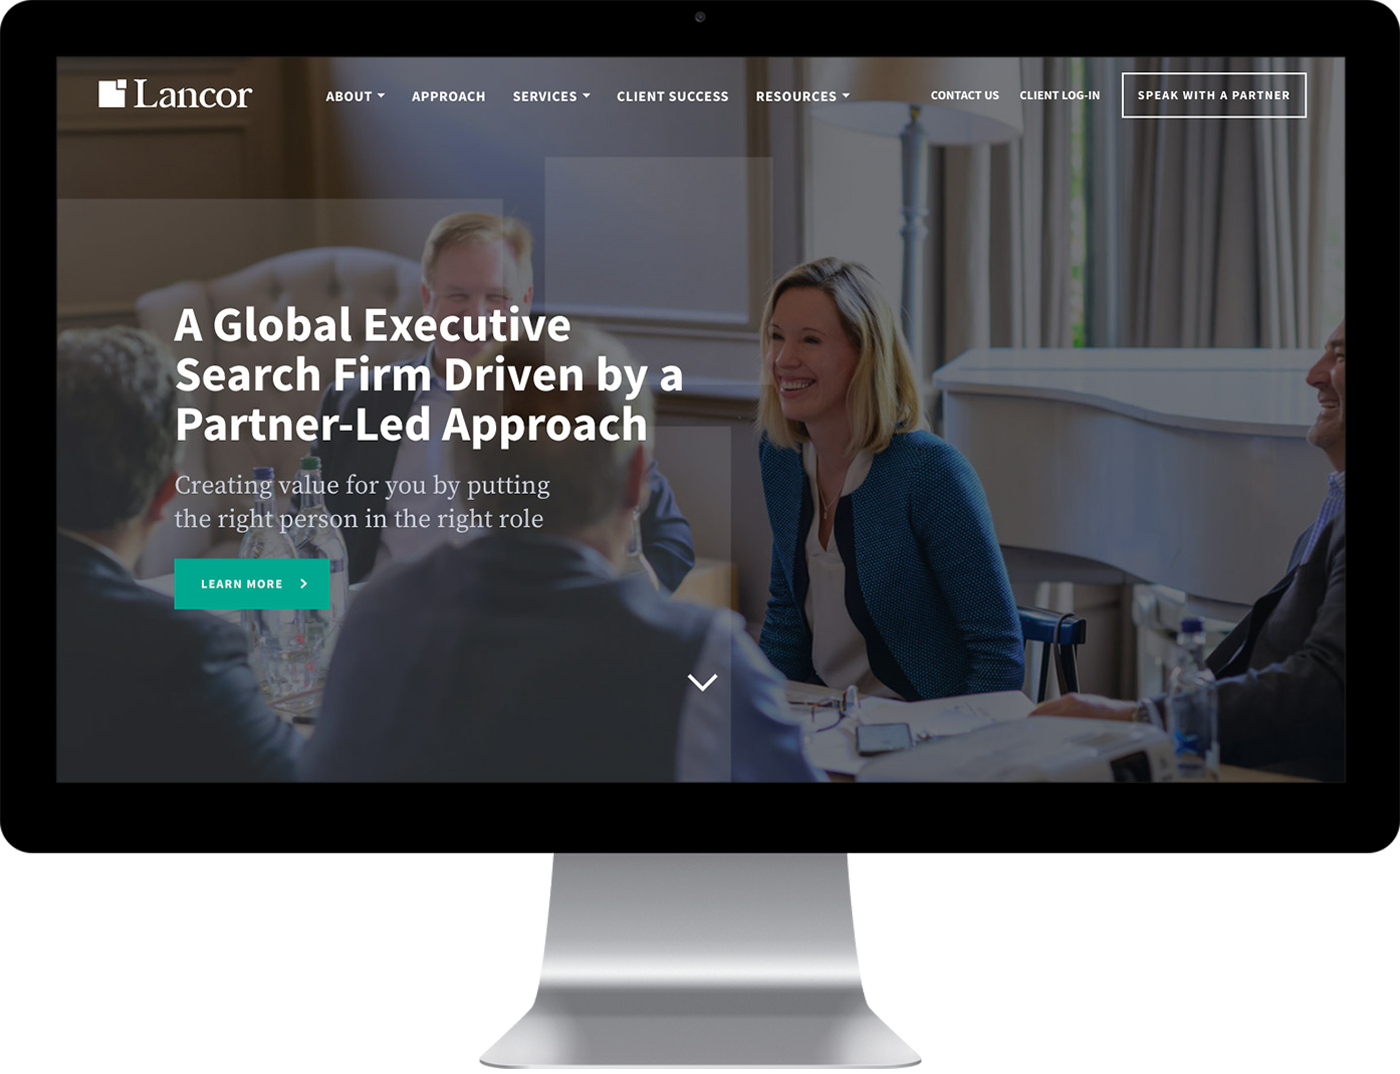 Lancor home page design